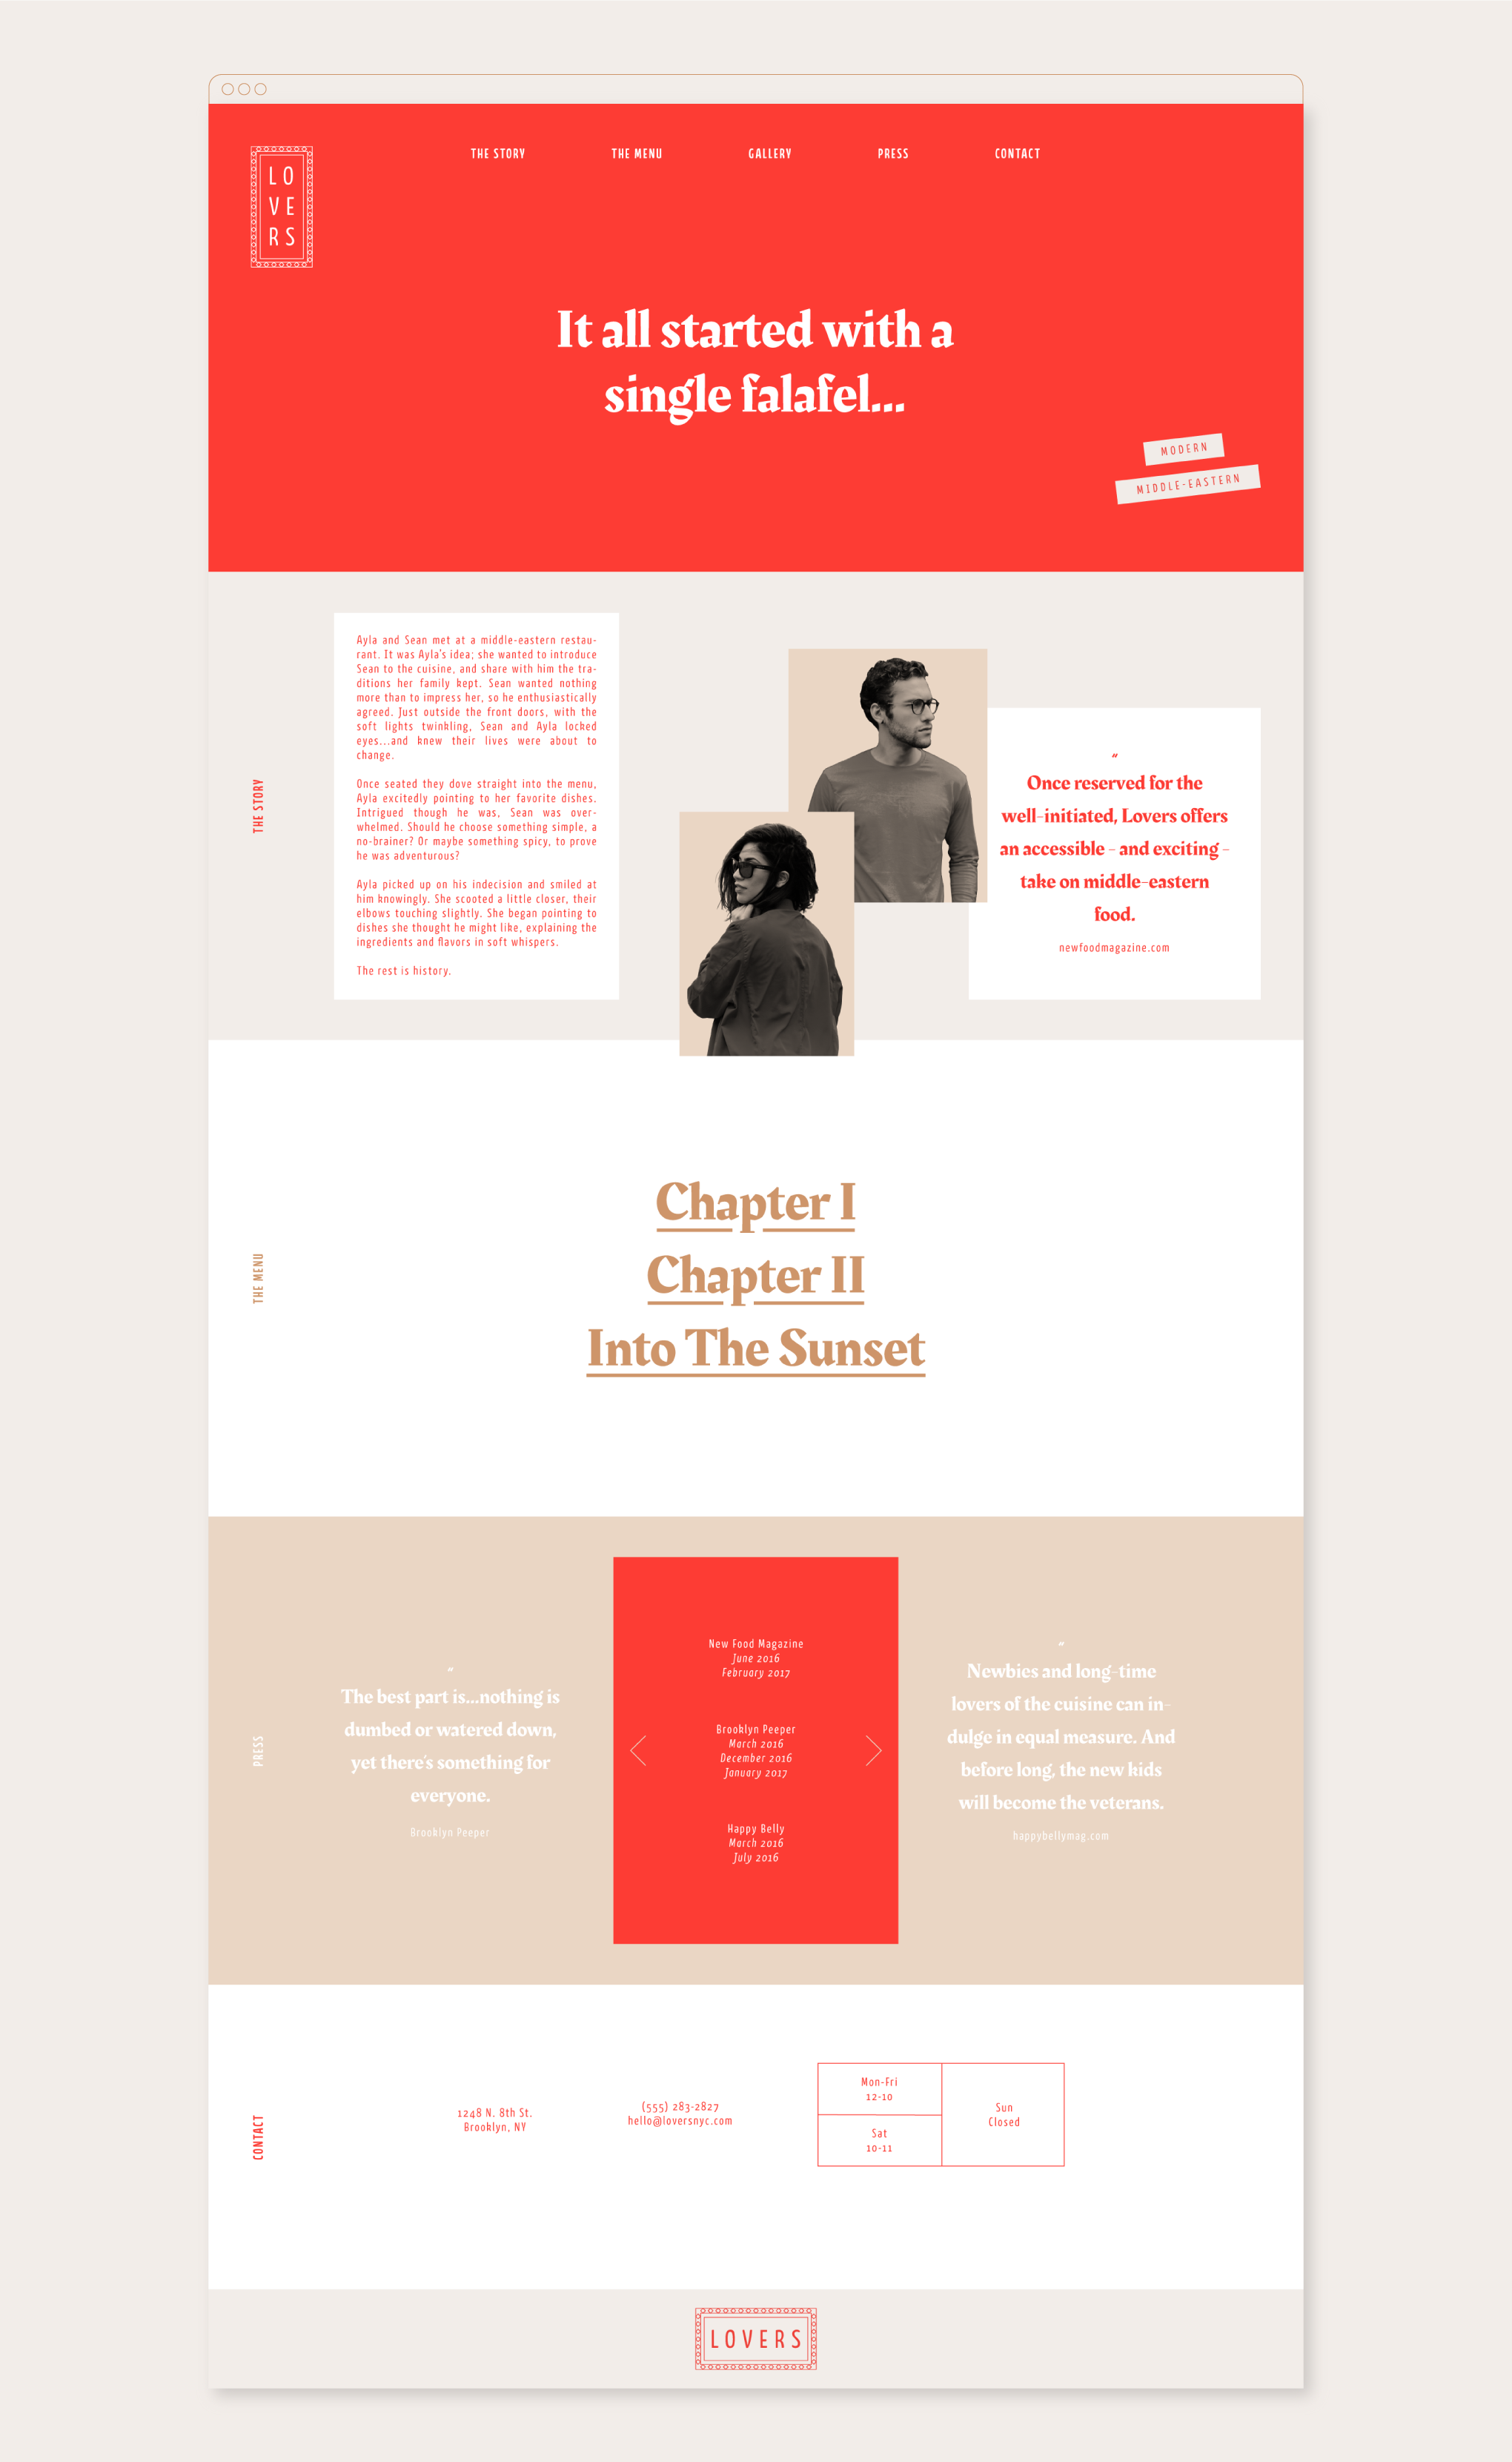 Lovers Website By Savannah Hunter Reeves Minimal Use Of Color With Pops Of Red Web Design Tips Web Development Design Website Design Layout